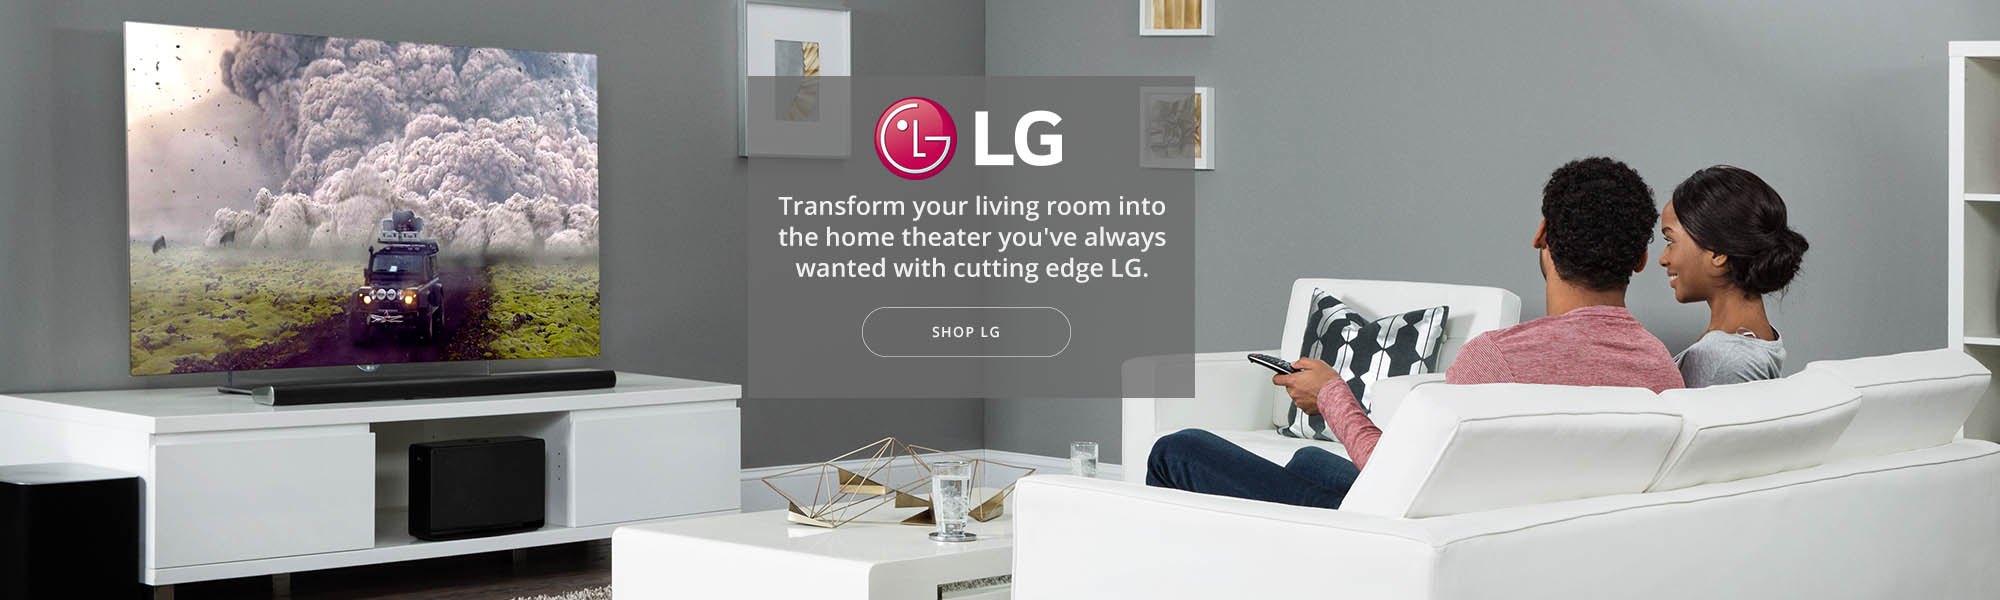 LG TV, Audio & Video